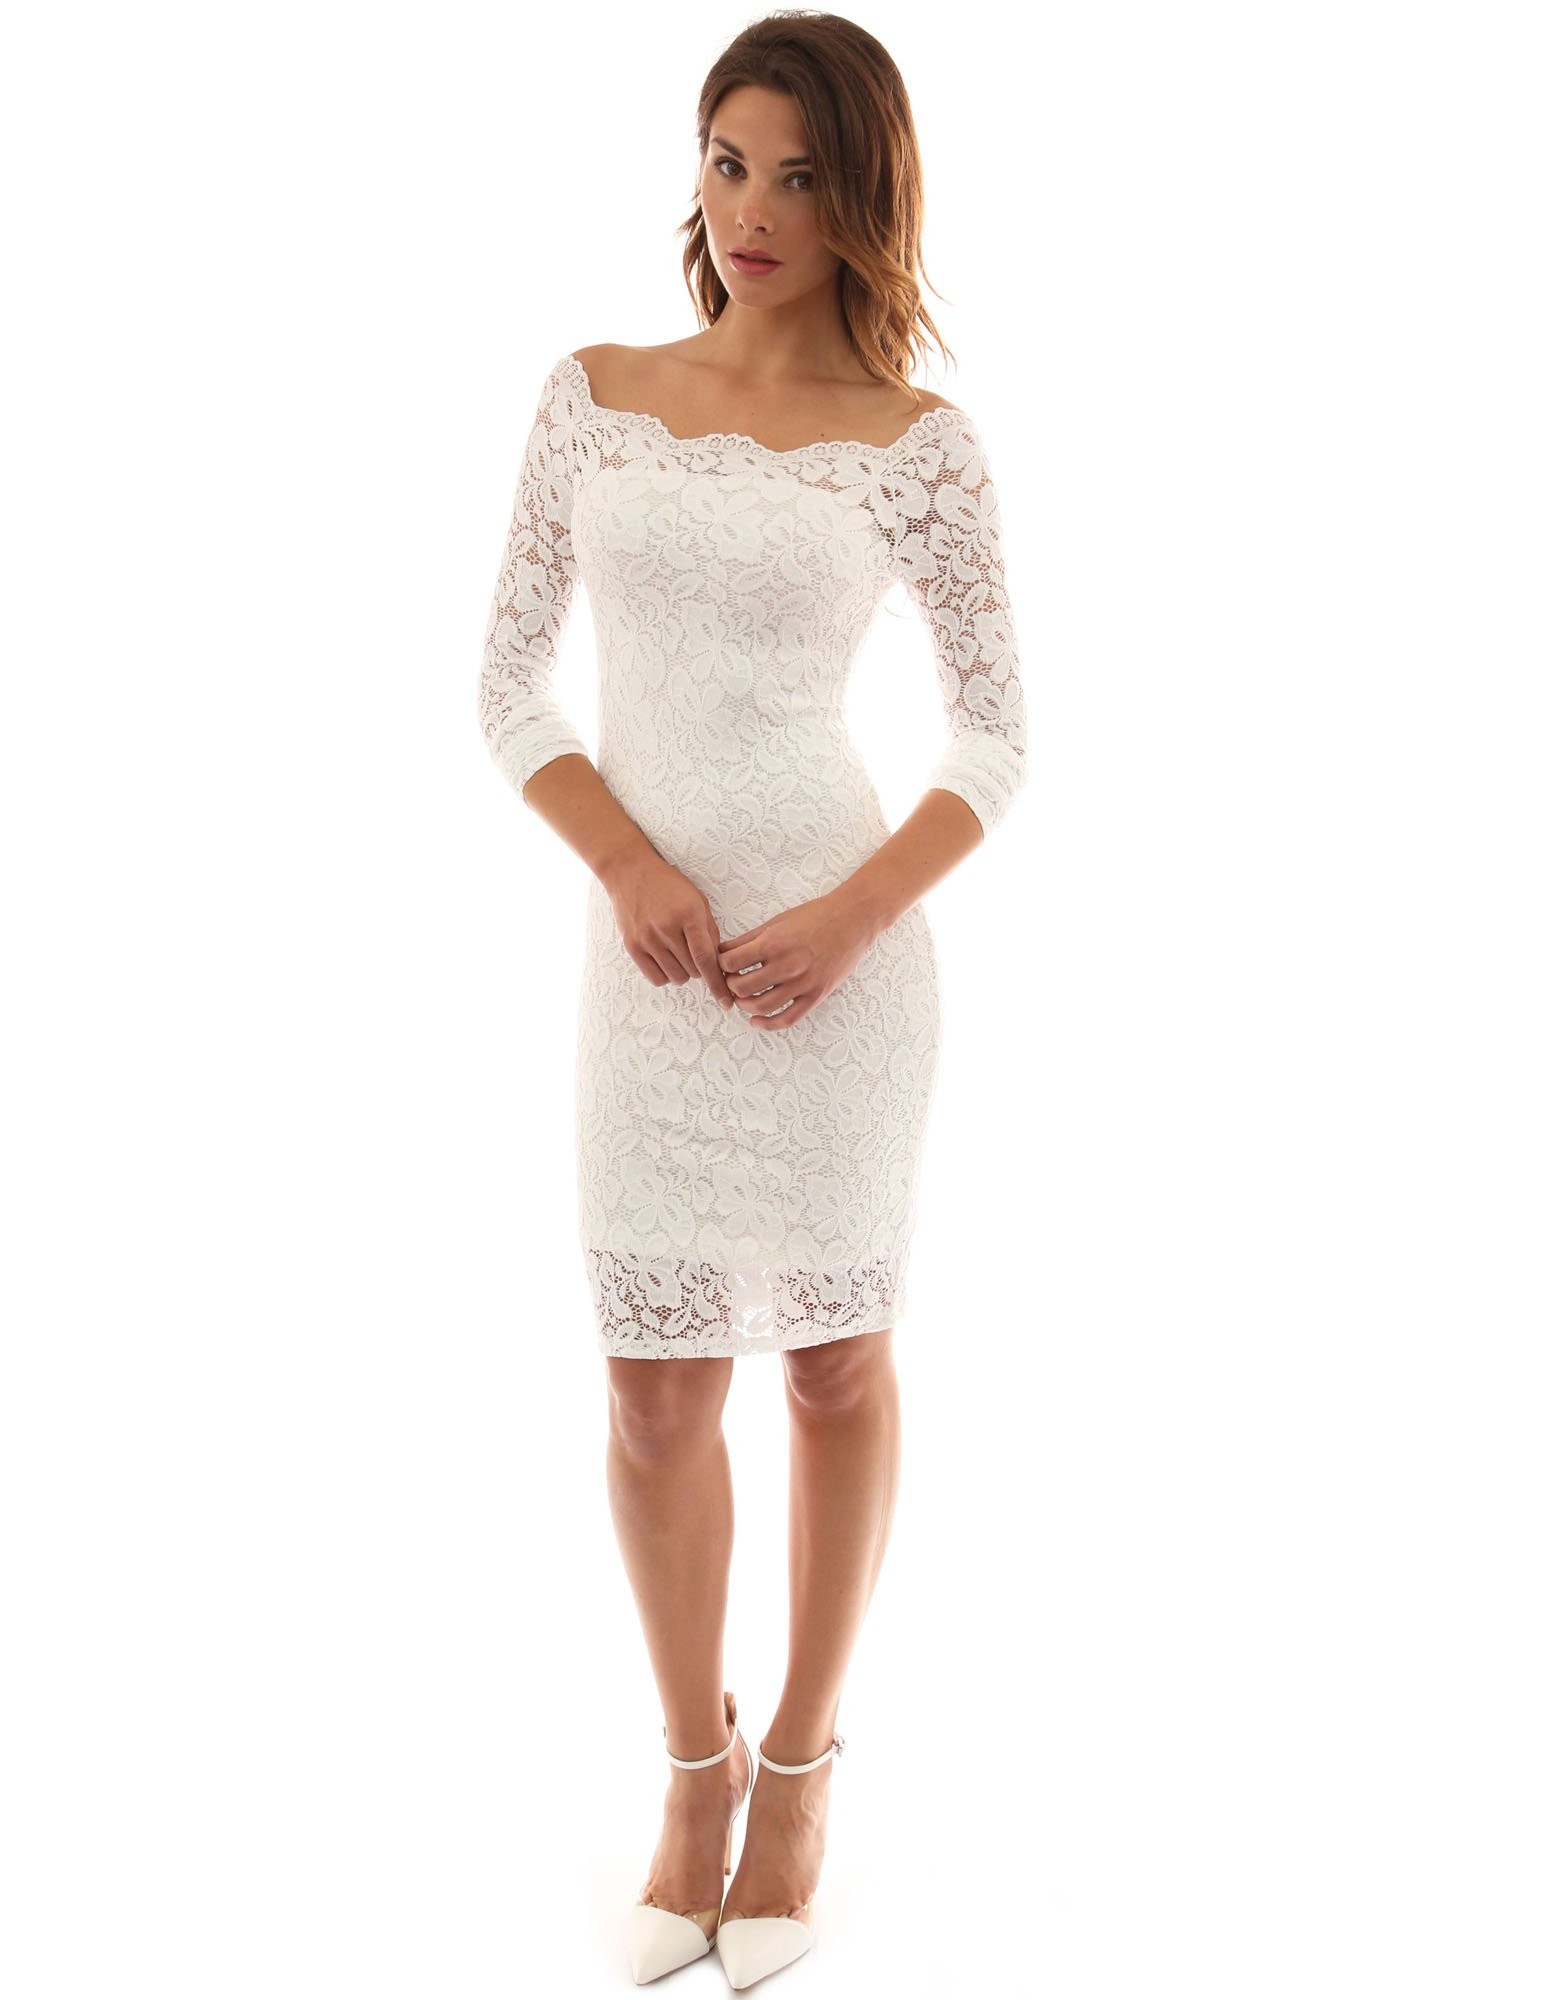 PattyBoutik Women's Off Shoulder Twin Set Floral Lace Dress (Off-White M)